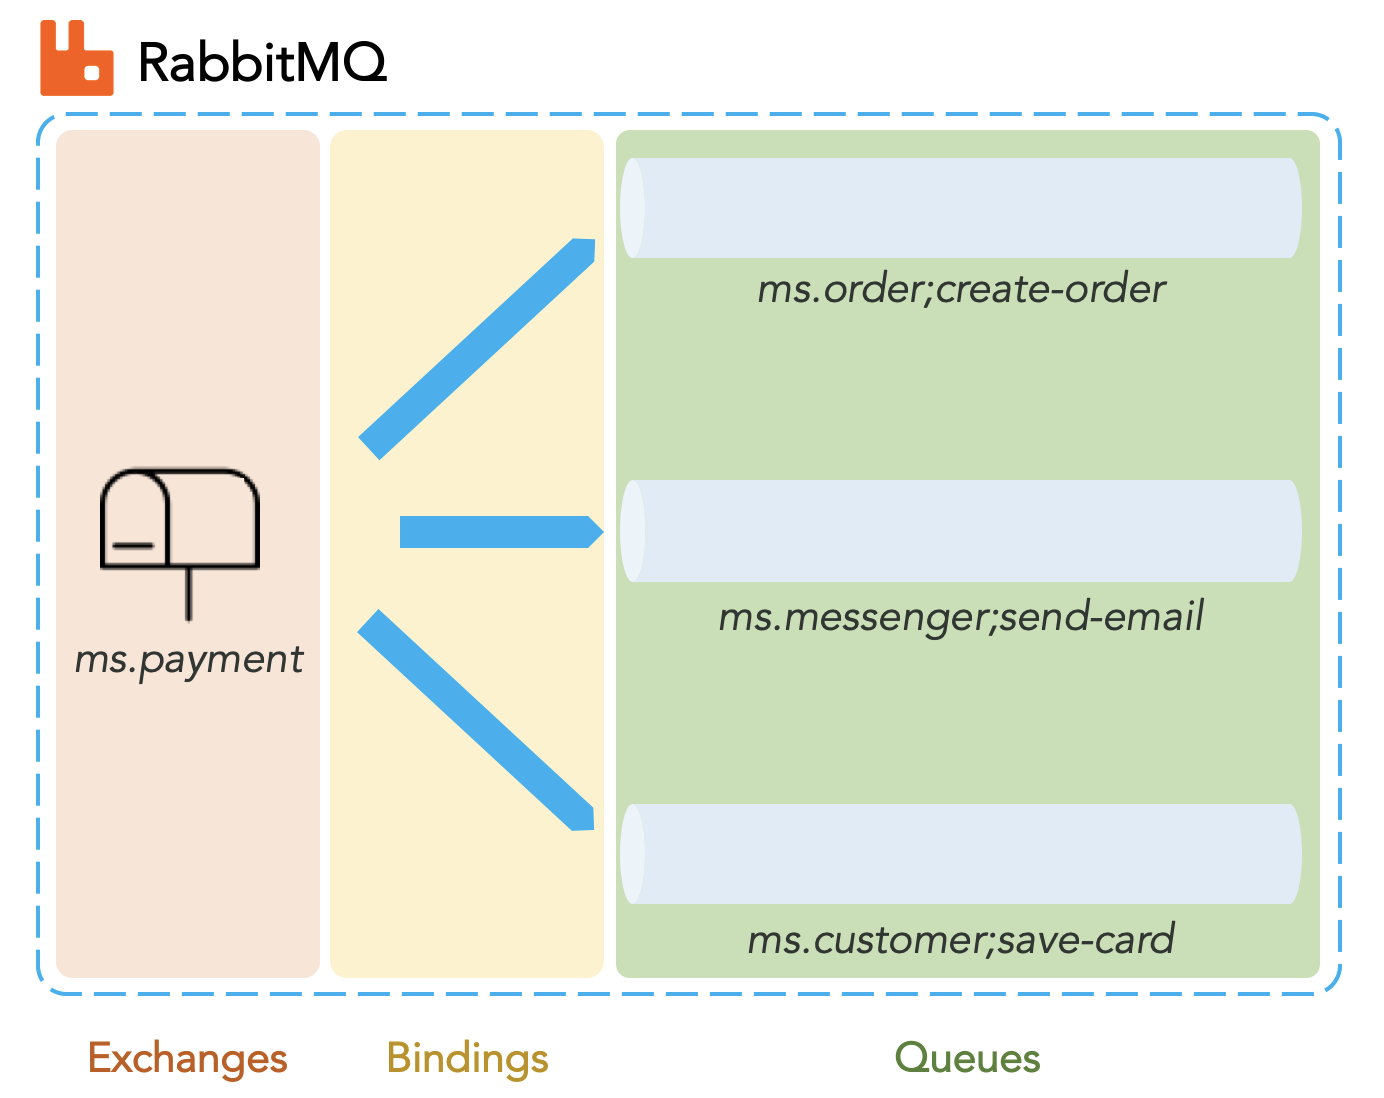 Configure exchanges, bindings and queues on RabbitMQ